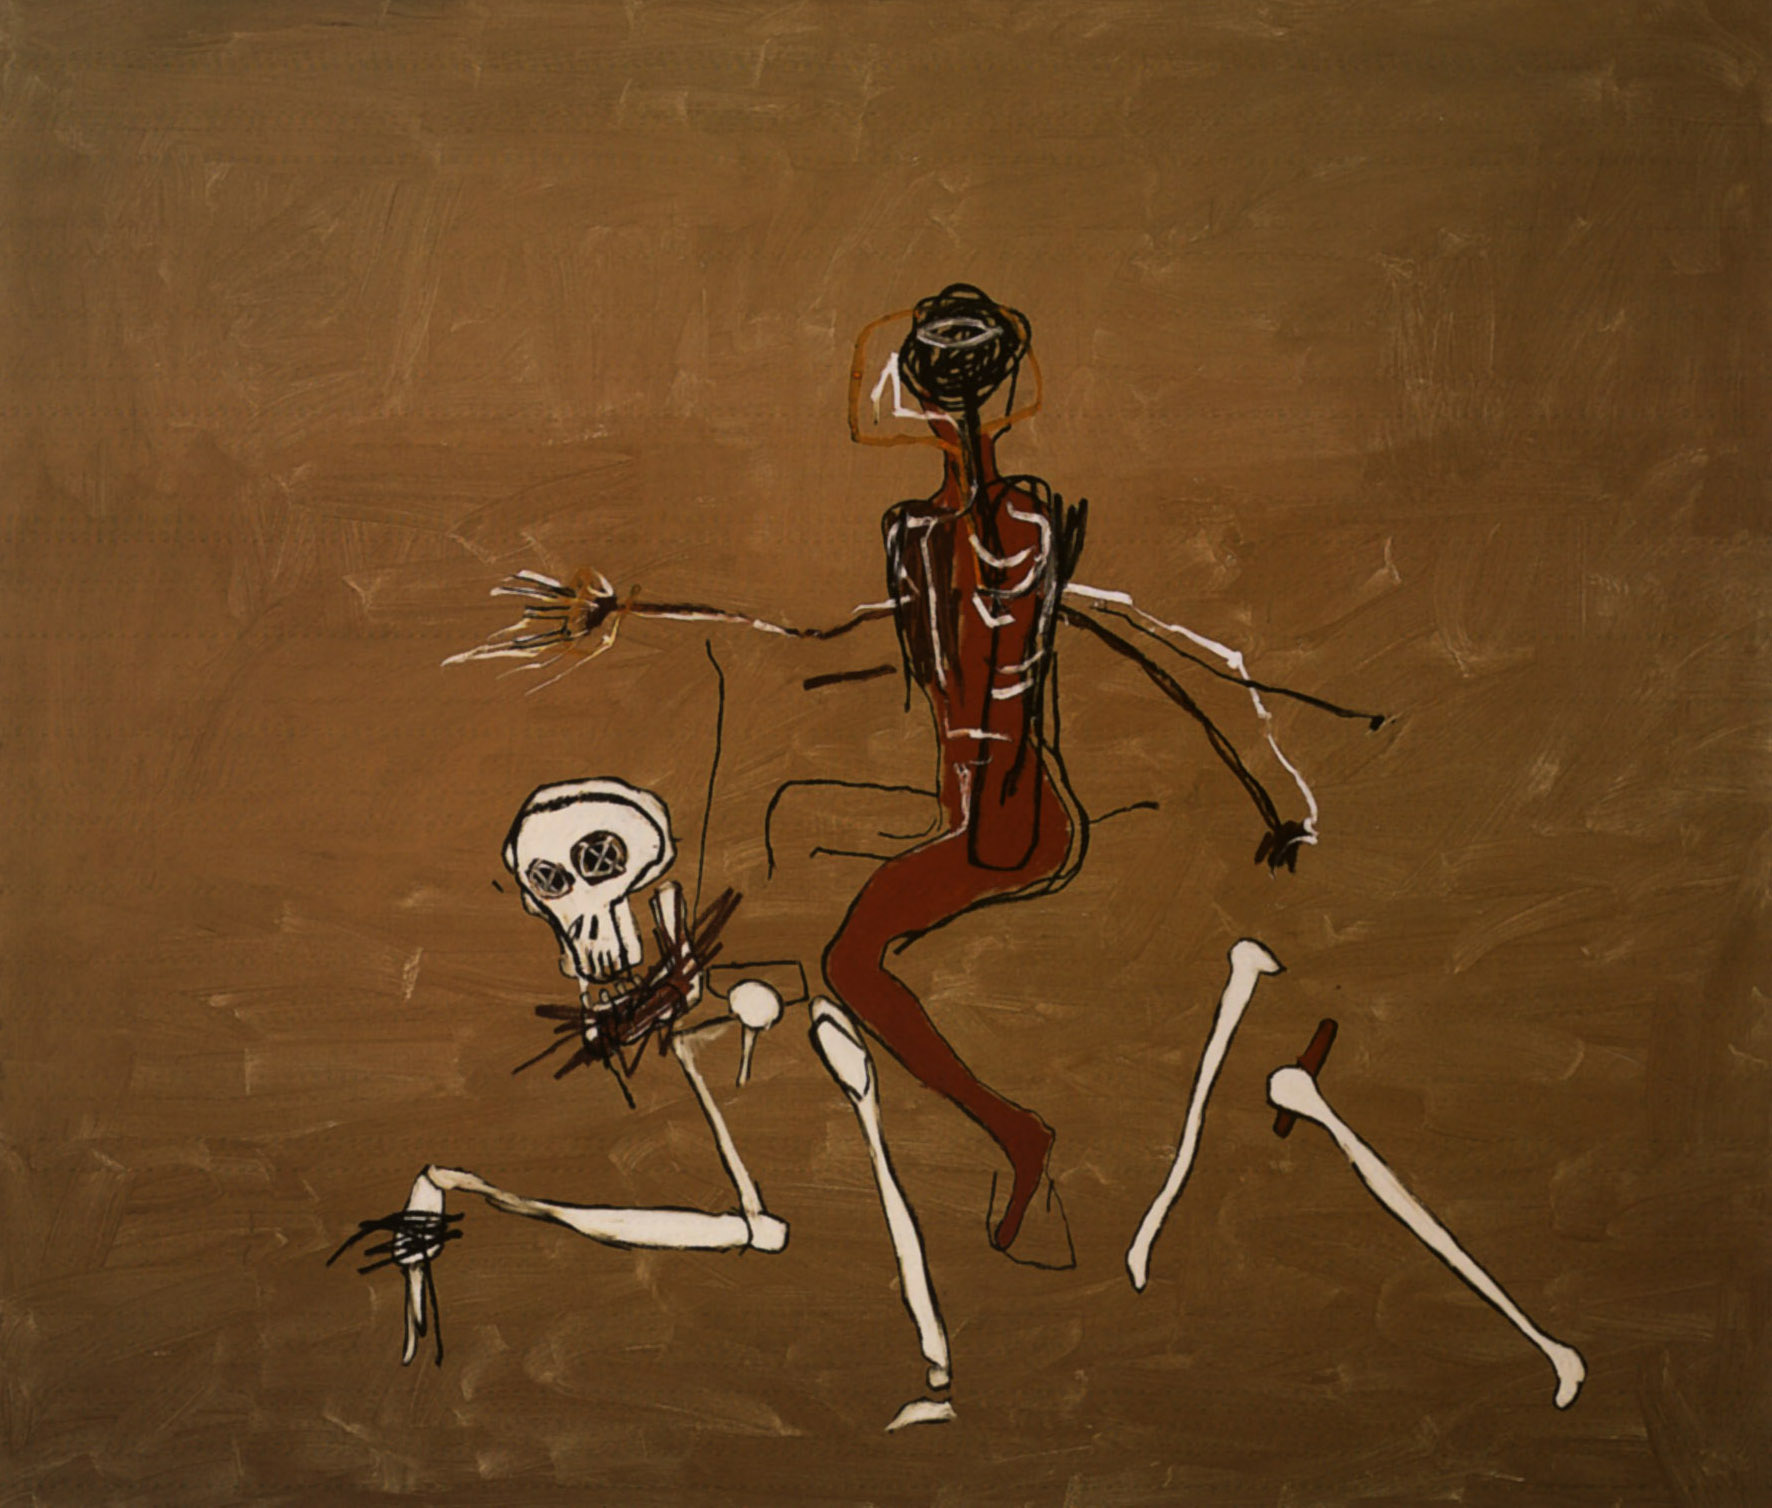 Riding with Death by Jean Michel Basquiat.